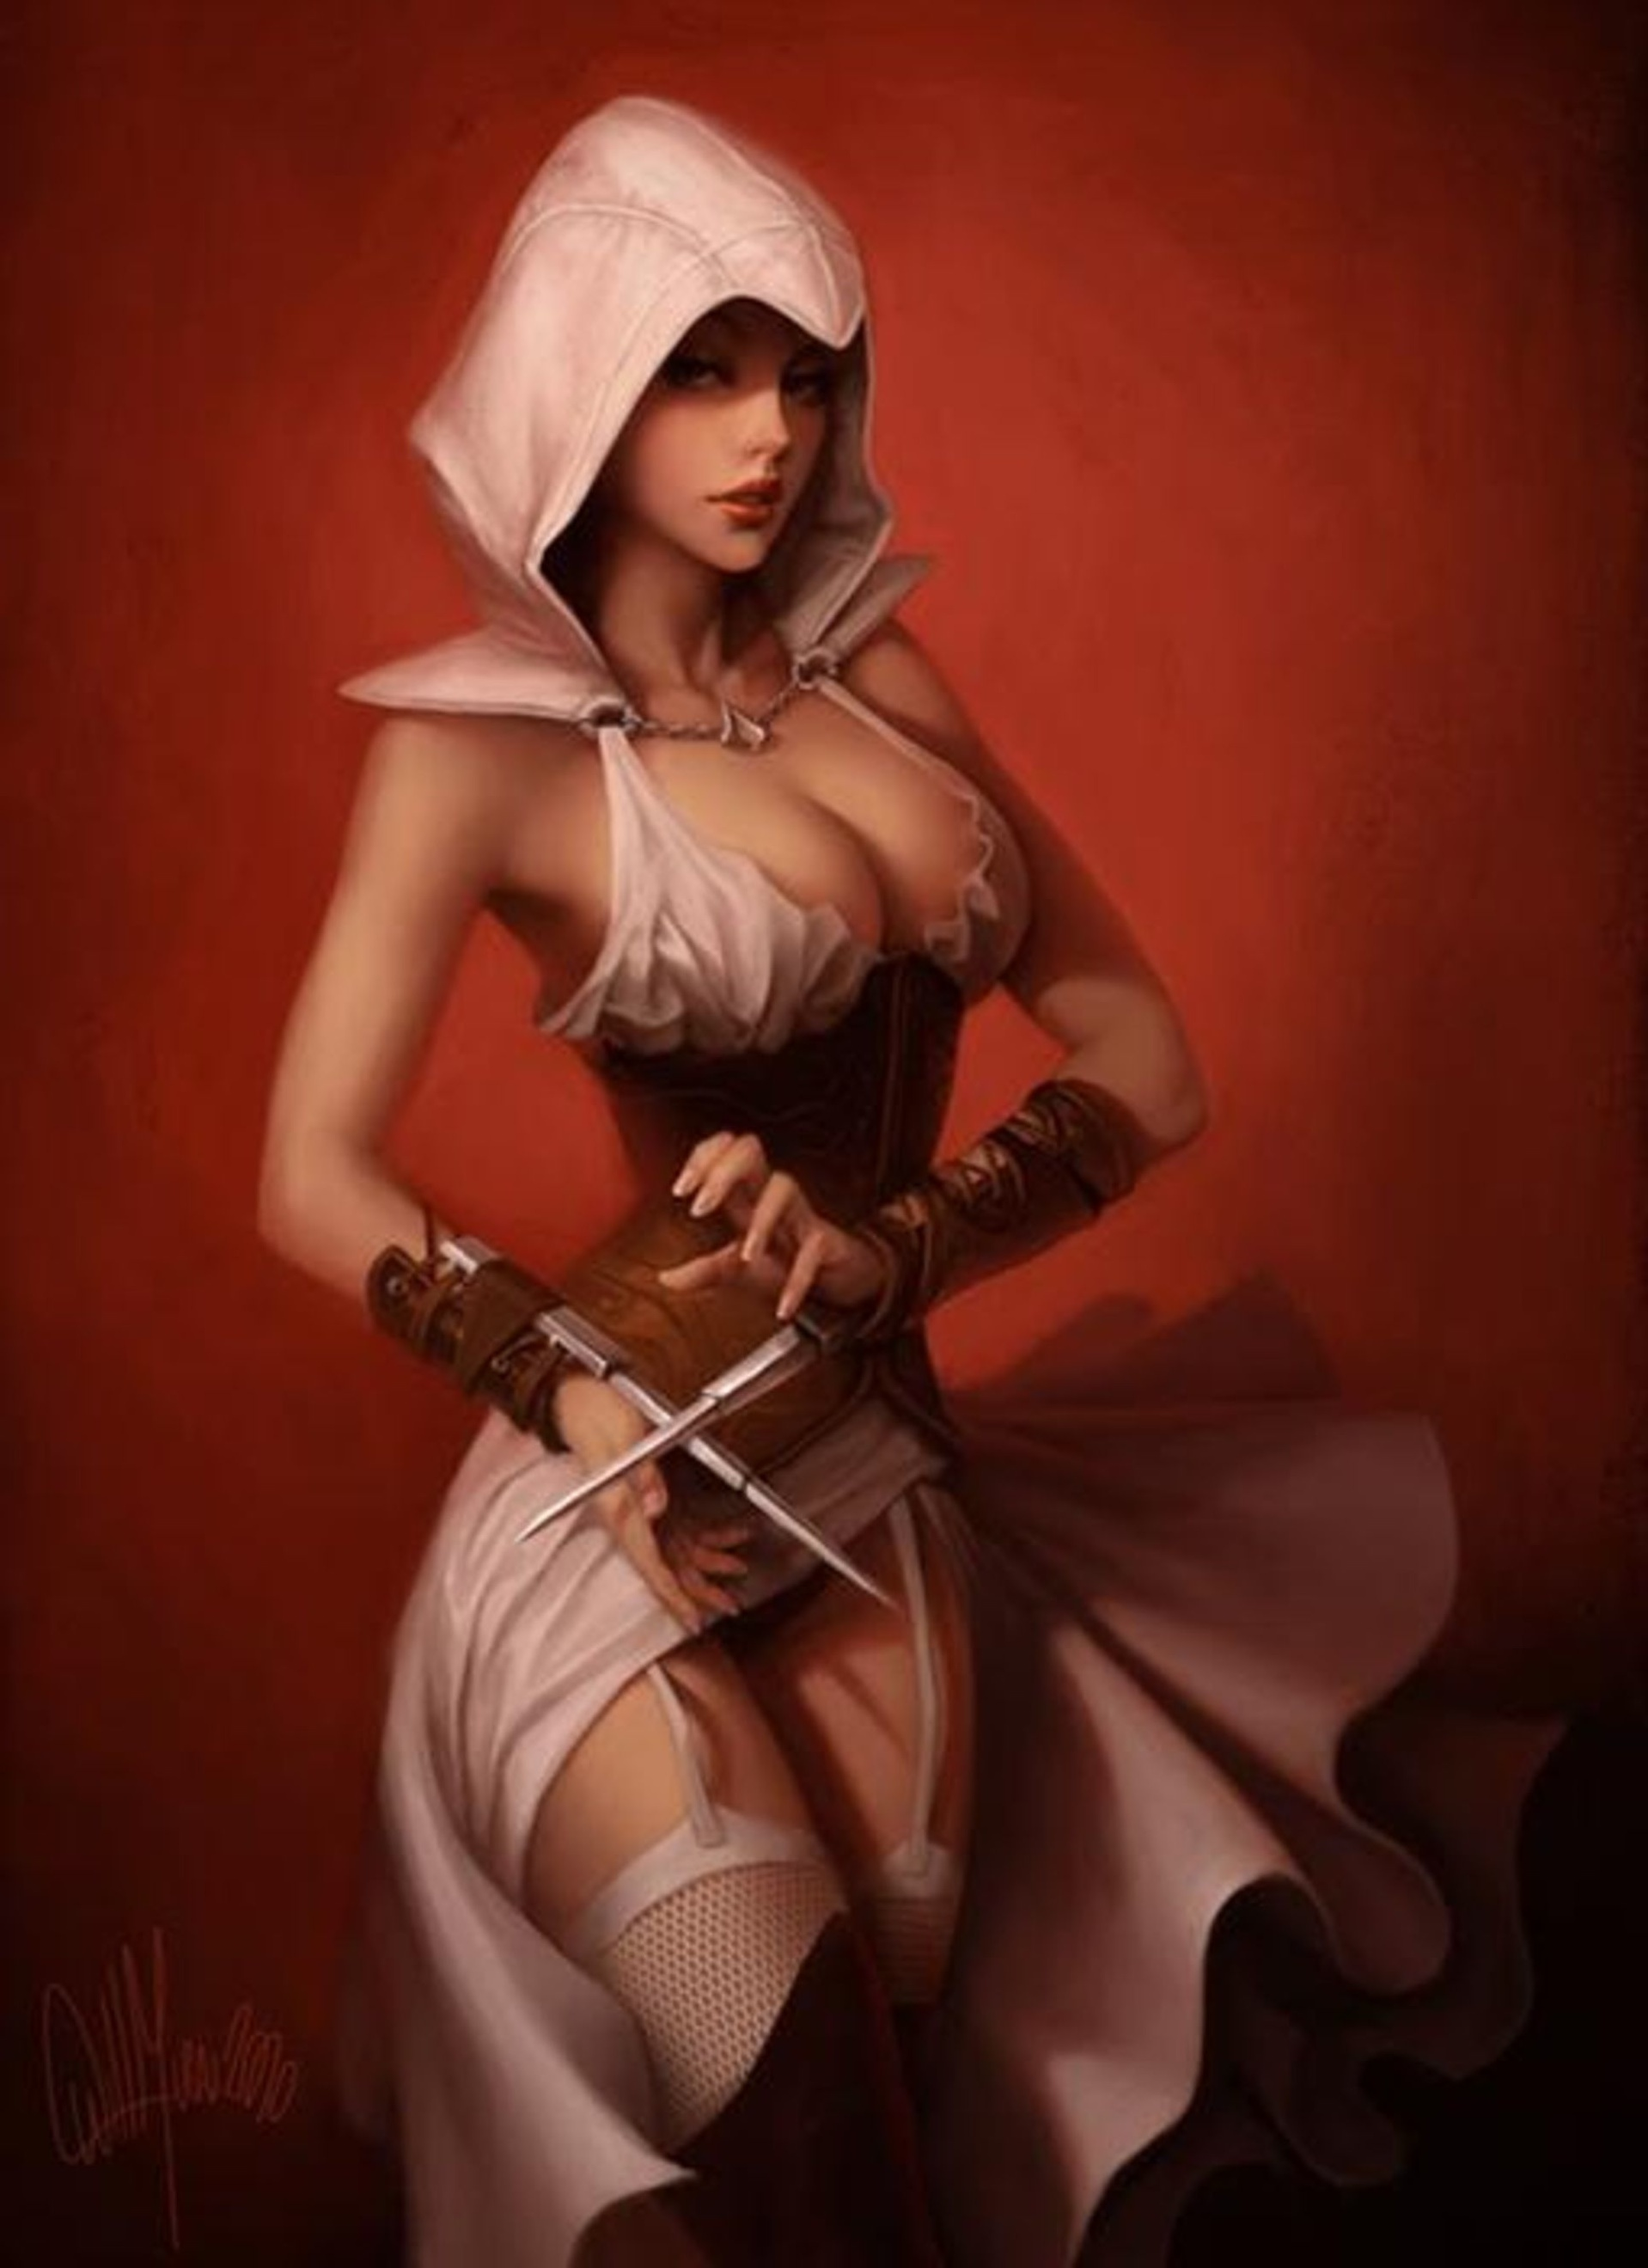 Assassin's creed female characters nude sexy videos